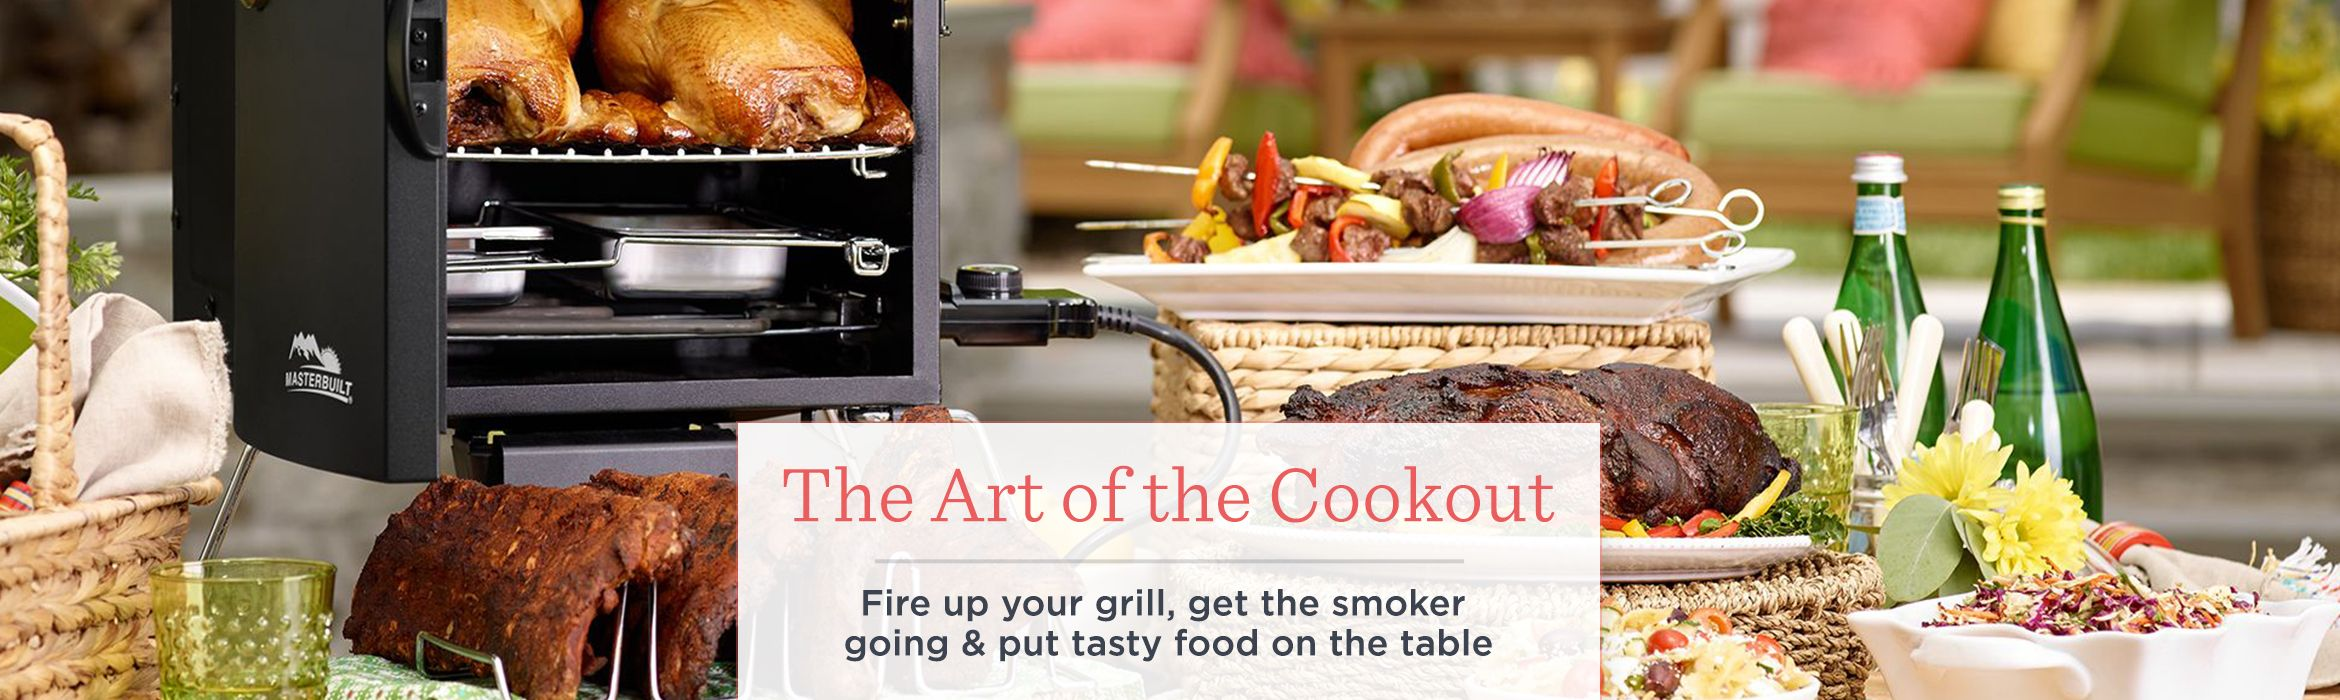 The Art of the Cookout  Fire up your grill, get the smoker going & put tasty food on the table